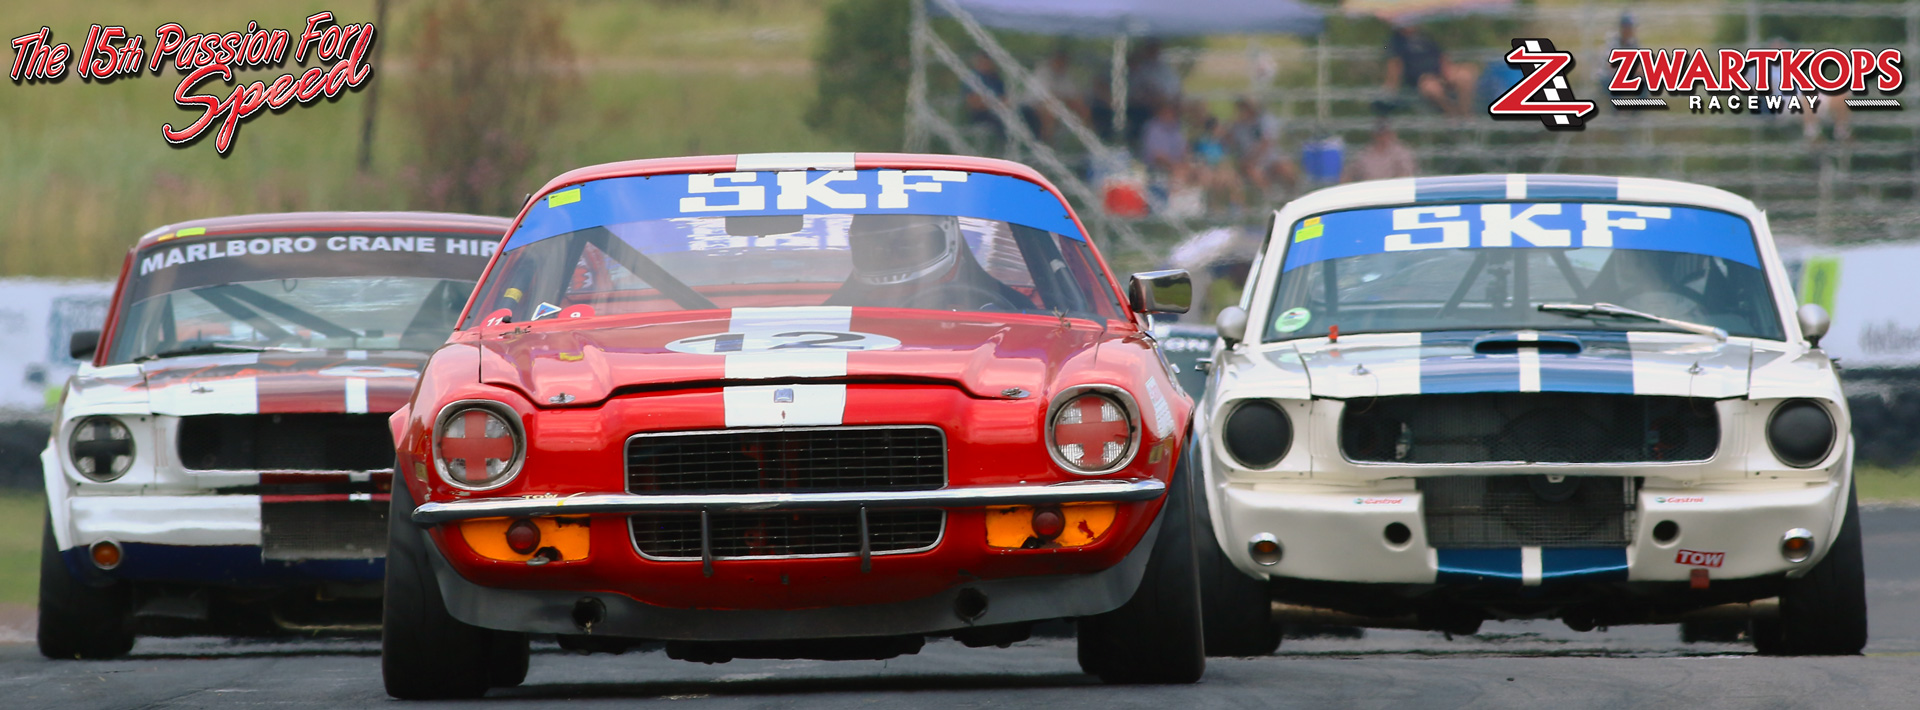 Champion of Champions Legends Pre-1970 - Zwartkops - Saturday 30 January